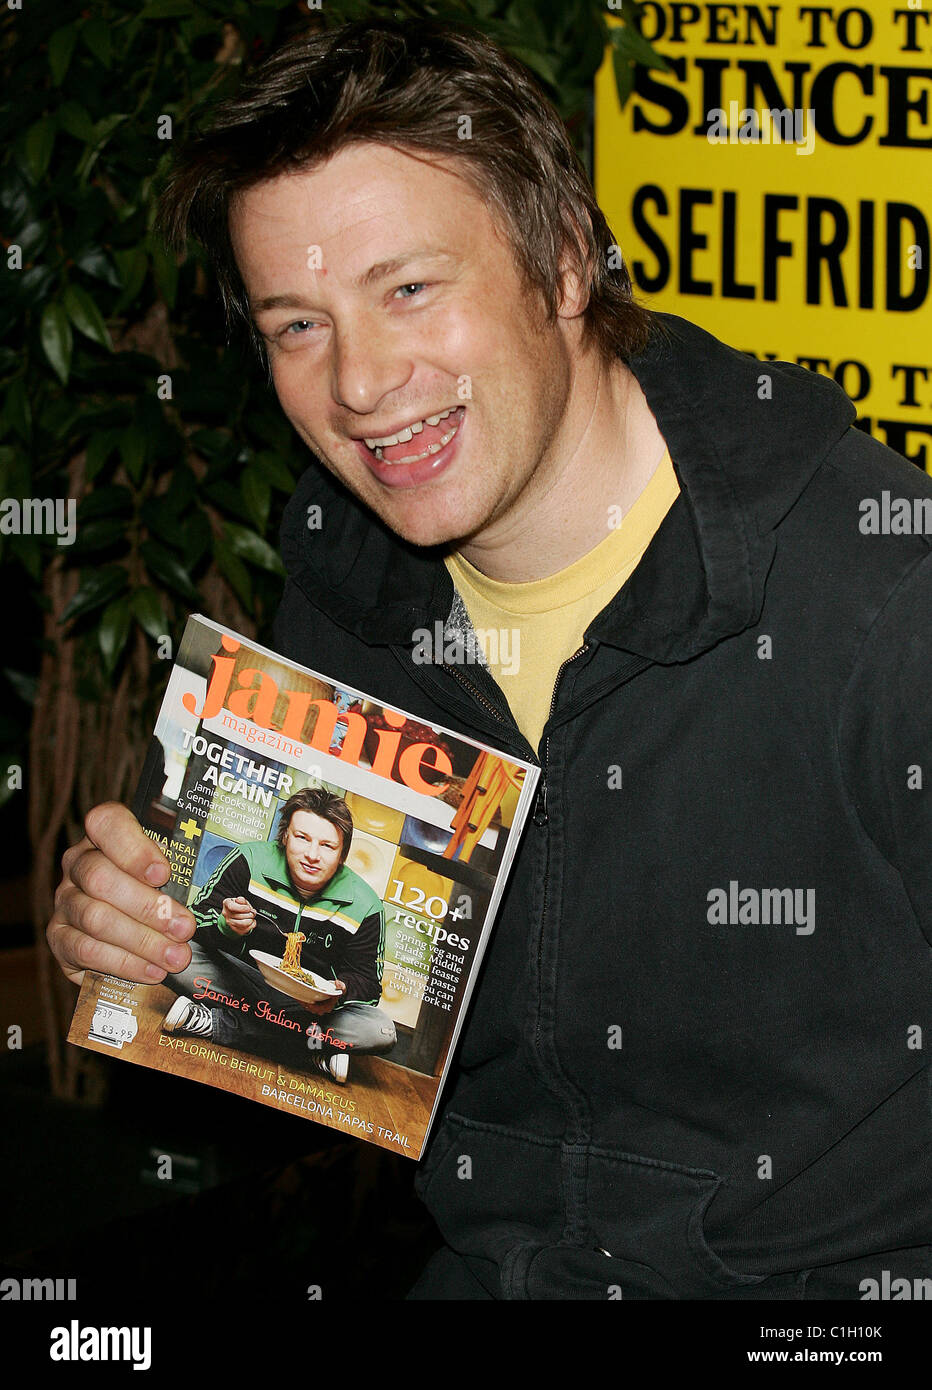 Jamie Oliver Signs Copies New Stock Photos & Jamie Oliver Signs